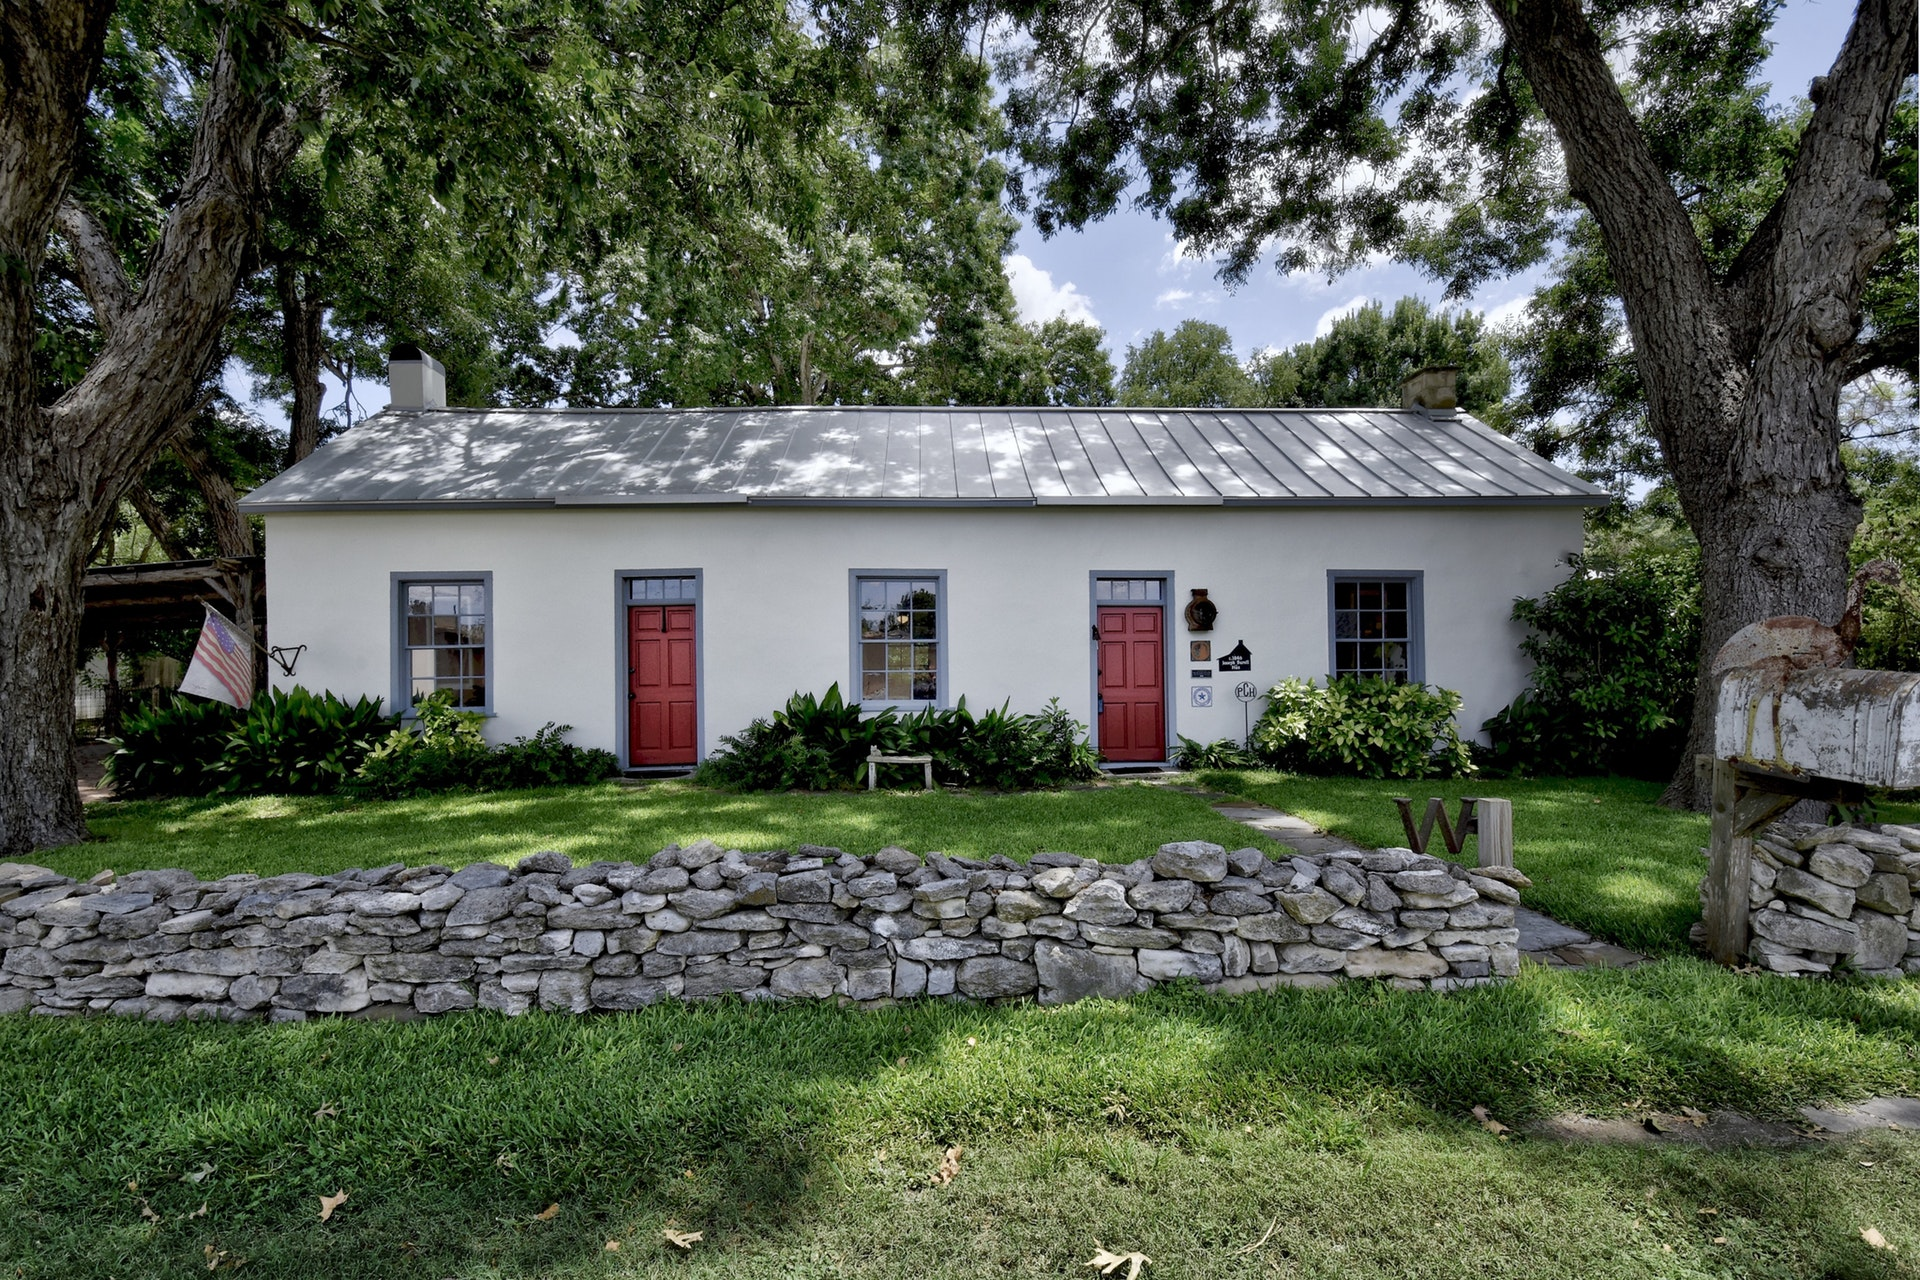 A white, one-story farmhouse for sale has two red doors and is surrounded by green grass and trees. There's a stone wall at the front.